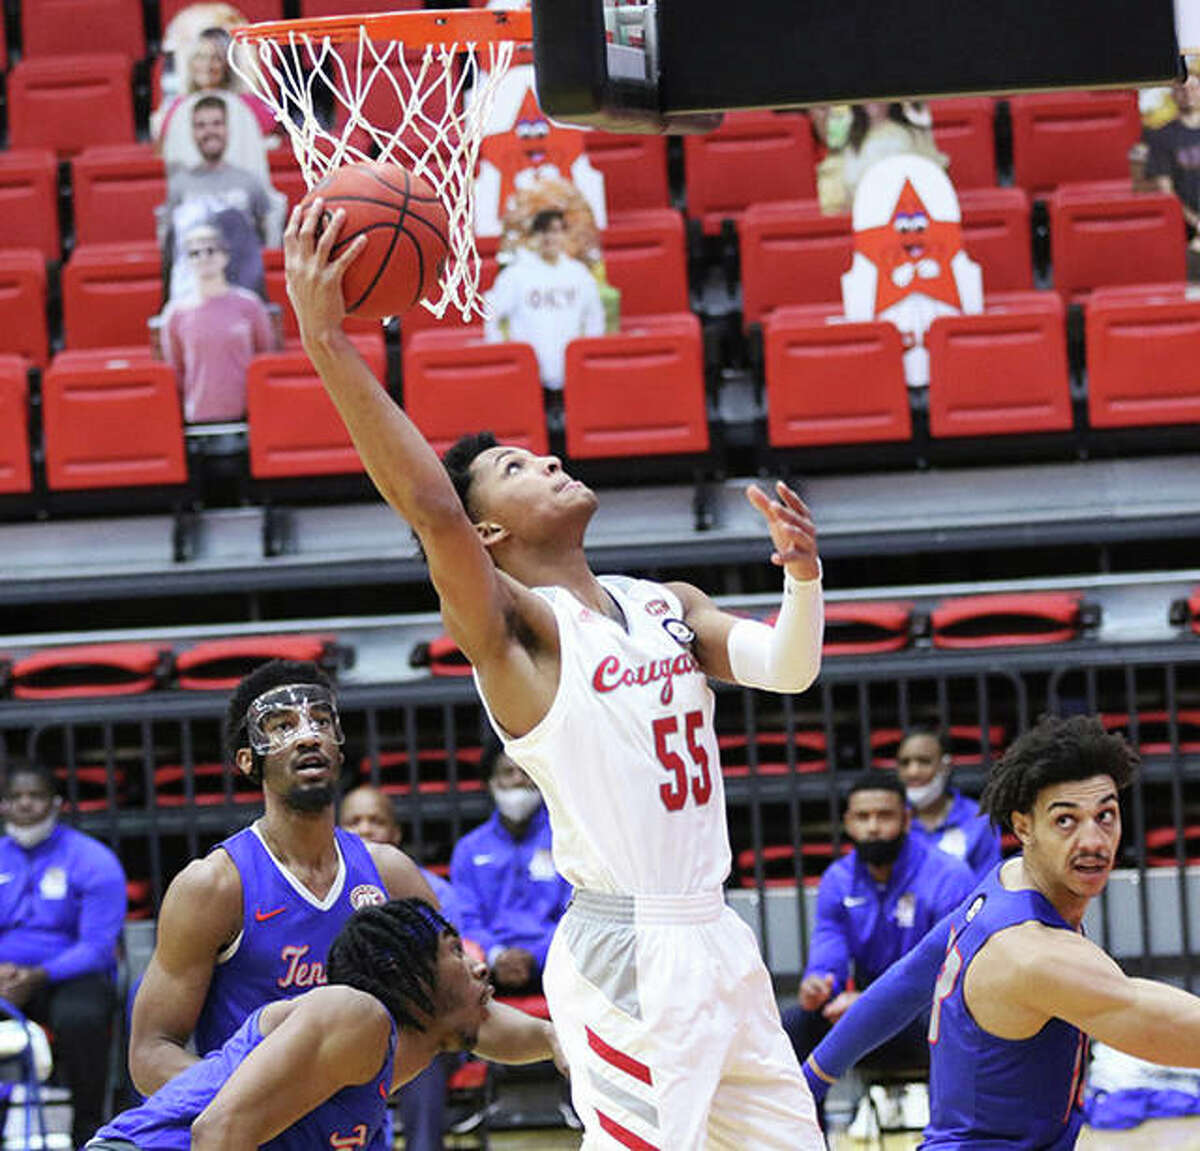 SIUE's Lamar Wright (55) goes up to score in a game against Tennessee State last season at First Community Arena in Edwardsville.